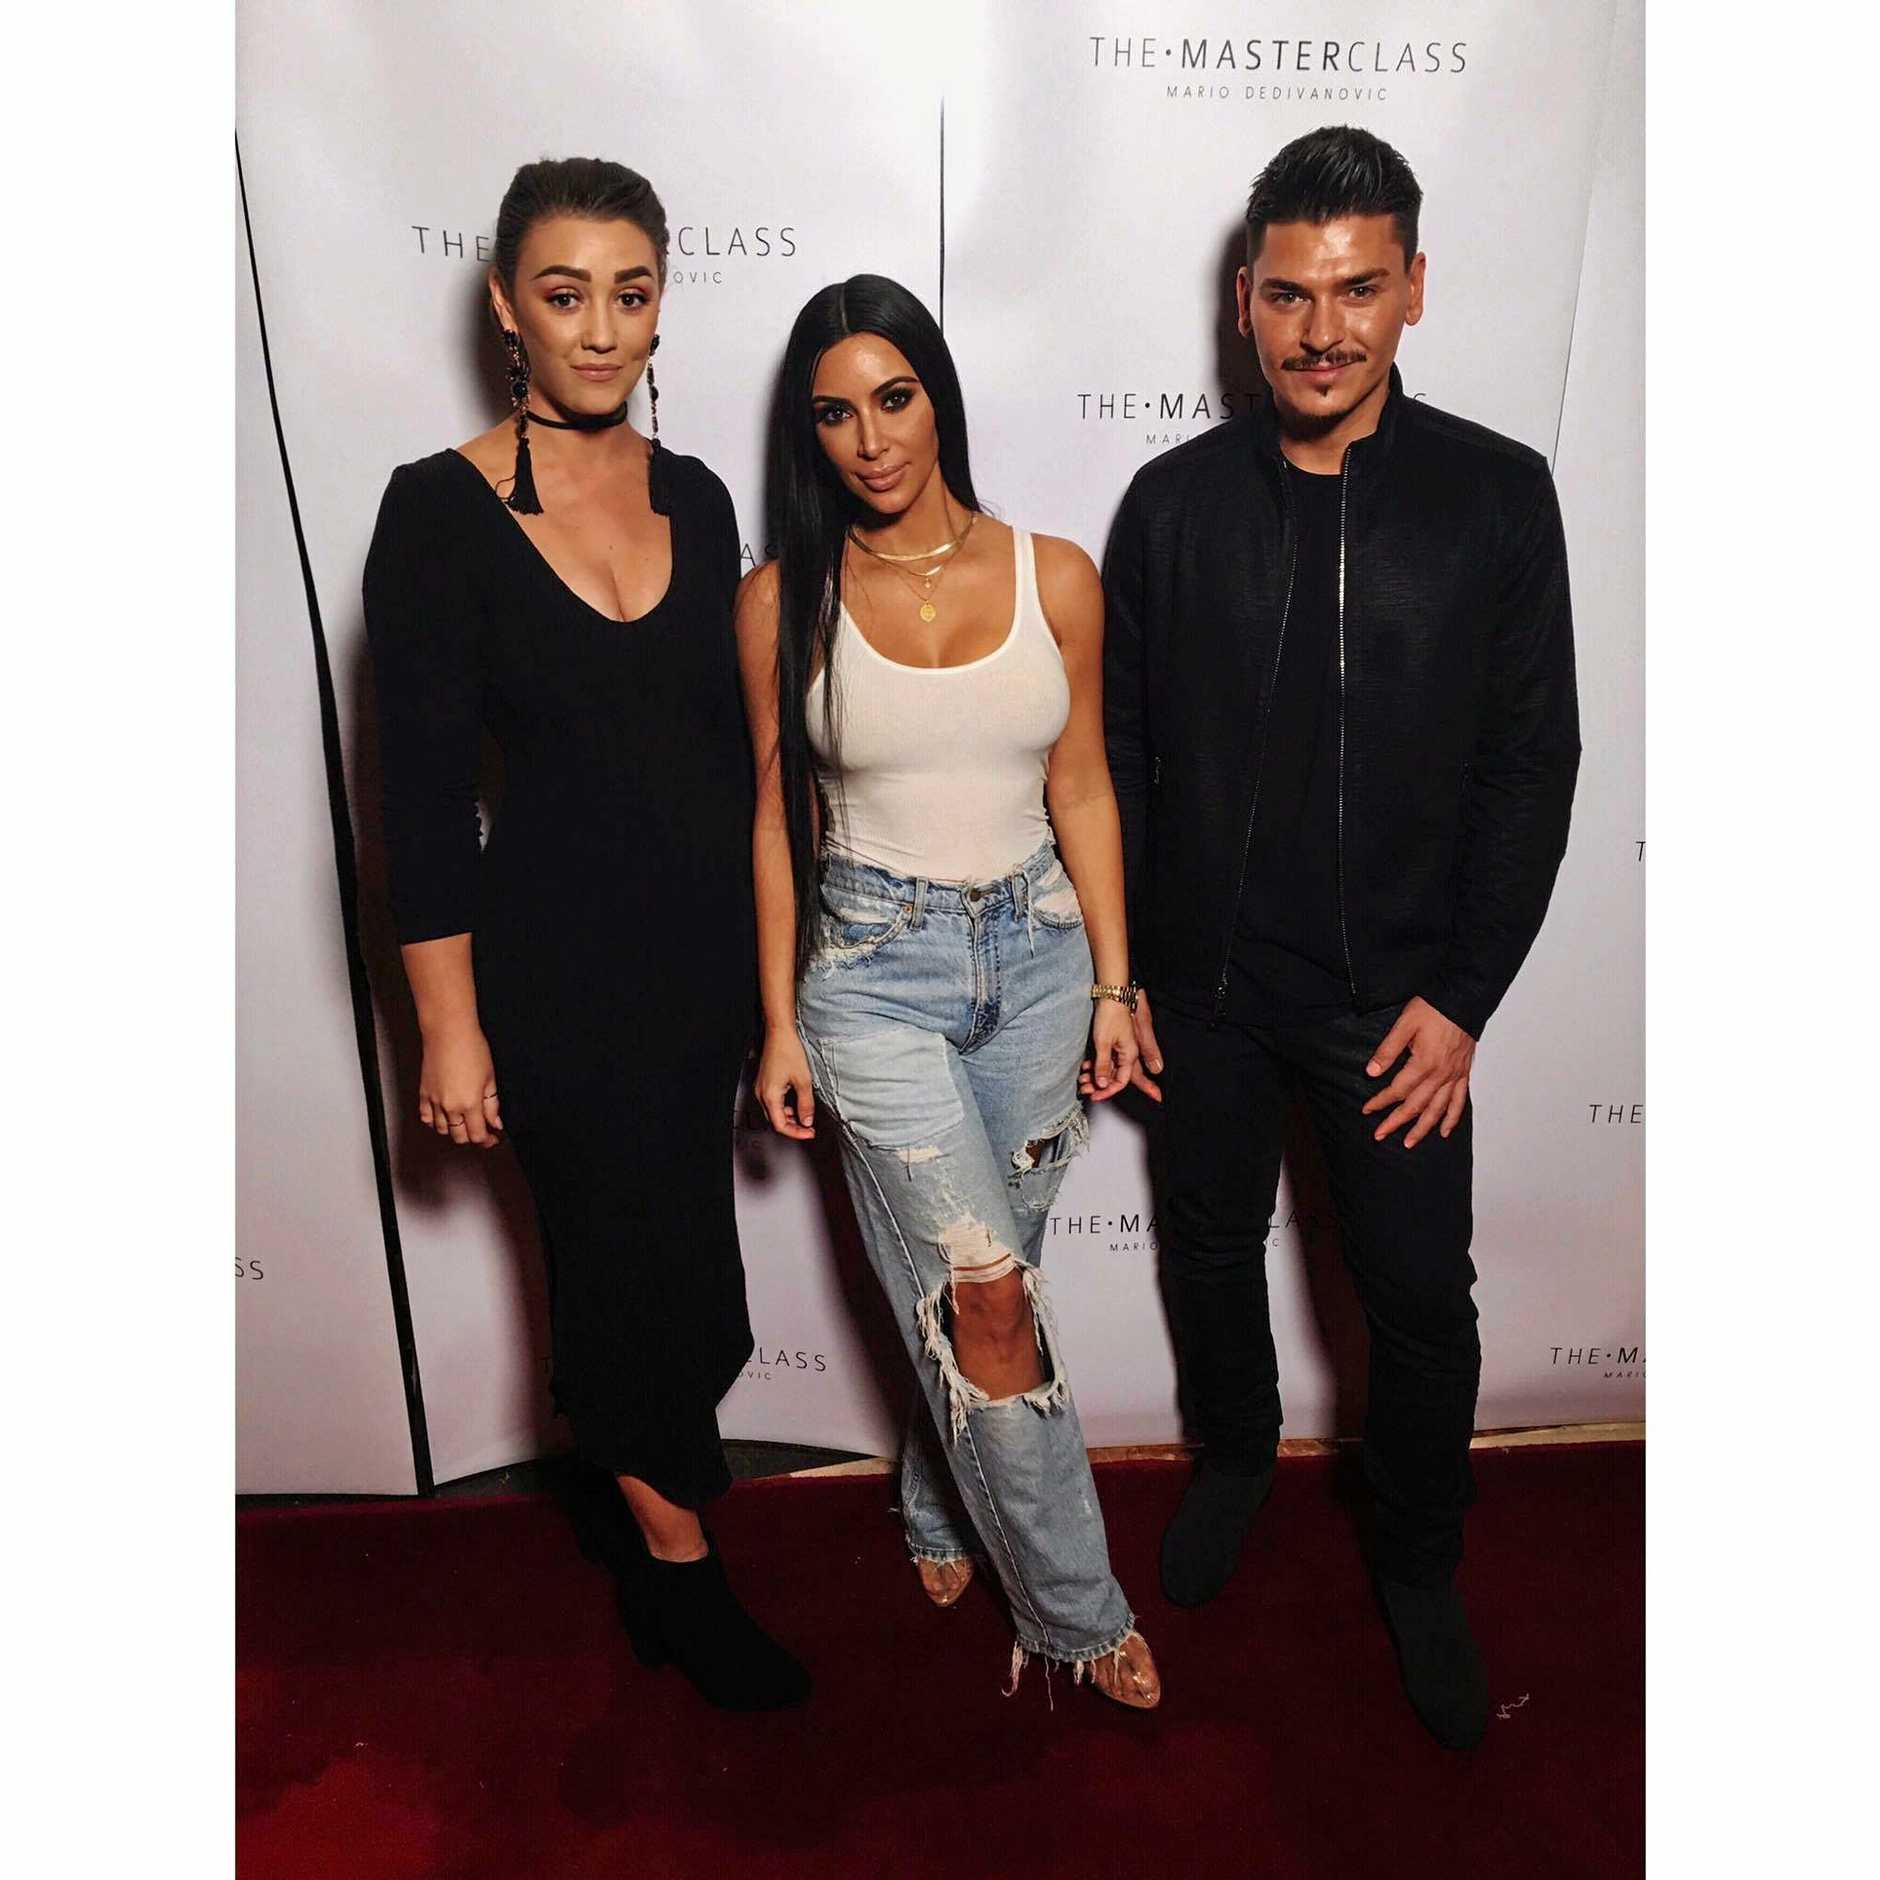 Make-up master class in Dubai with Lorelli Macaulay, Kim Kardashian and Mario Dedivanovic